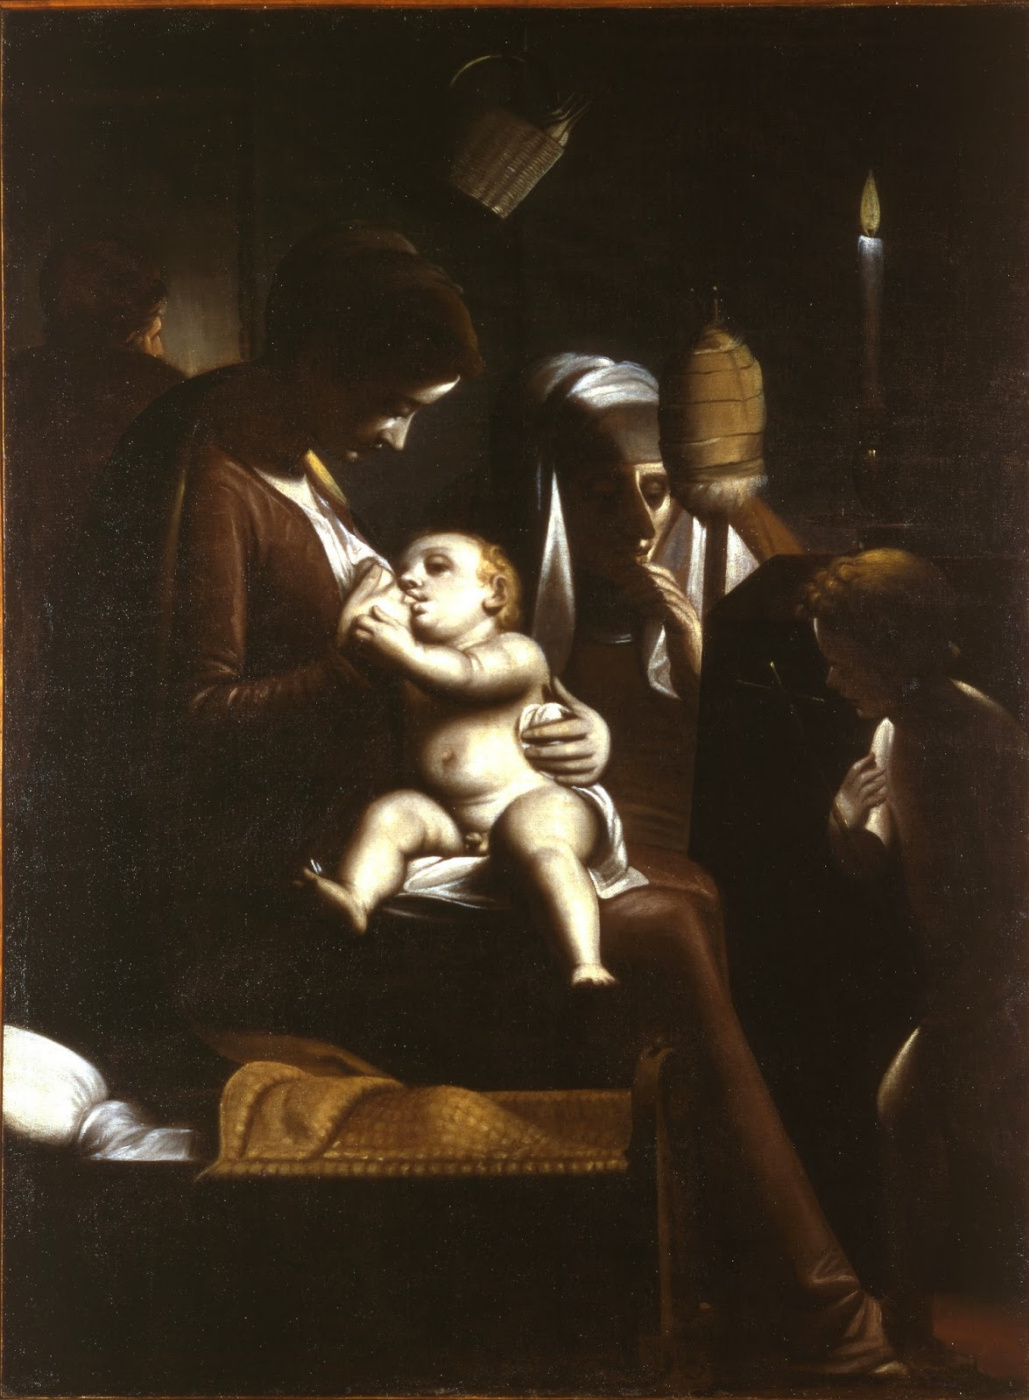 Sofonisba Angisola. Madonna and Child by candlelight (Luca Cambiaso as Madonna)